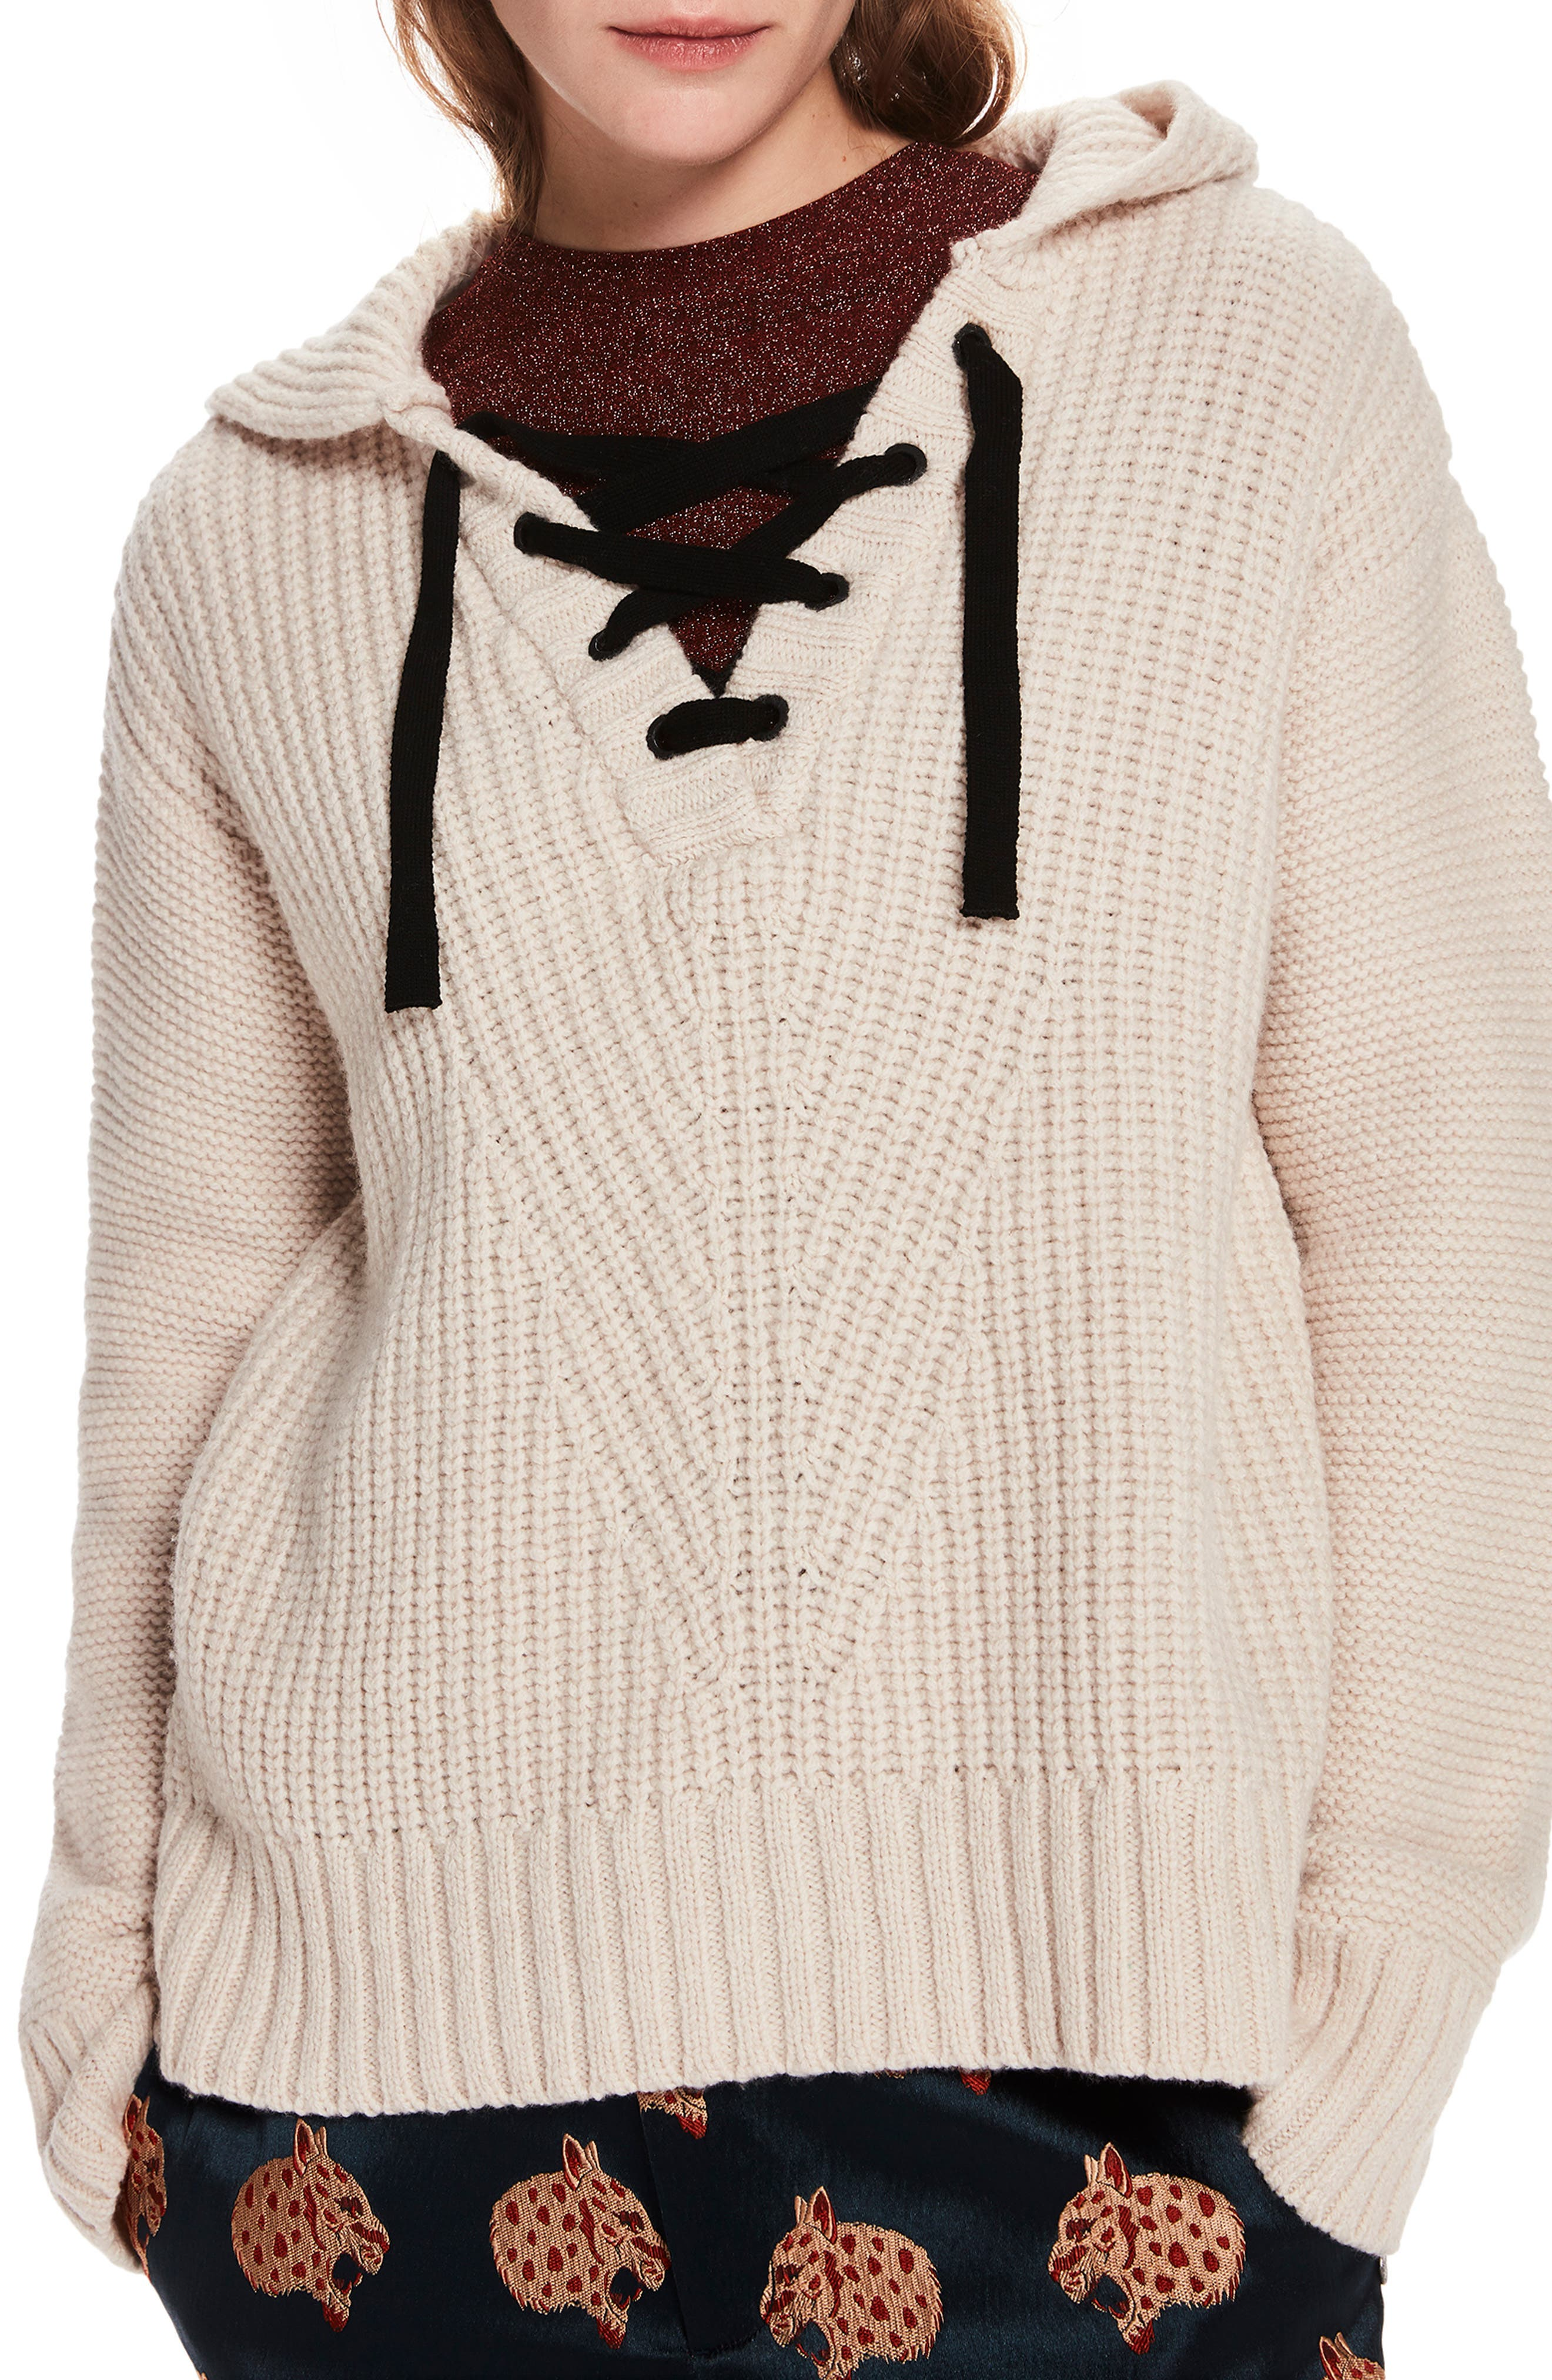 Lace-Up Knit Hooded Sweater,                         Main,                         color, CREAM